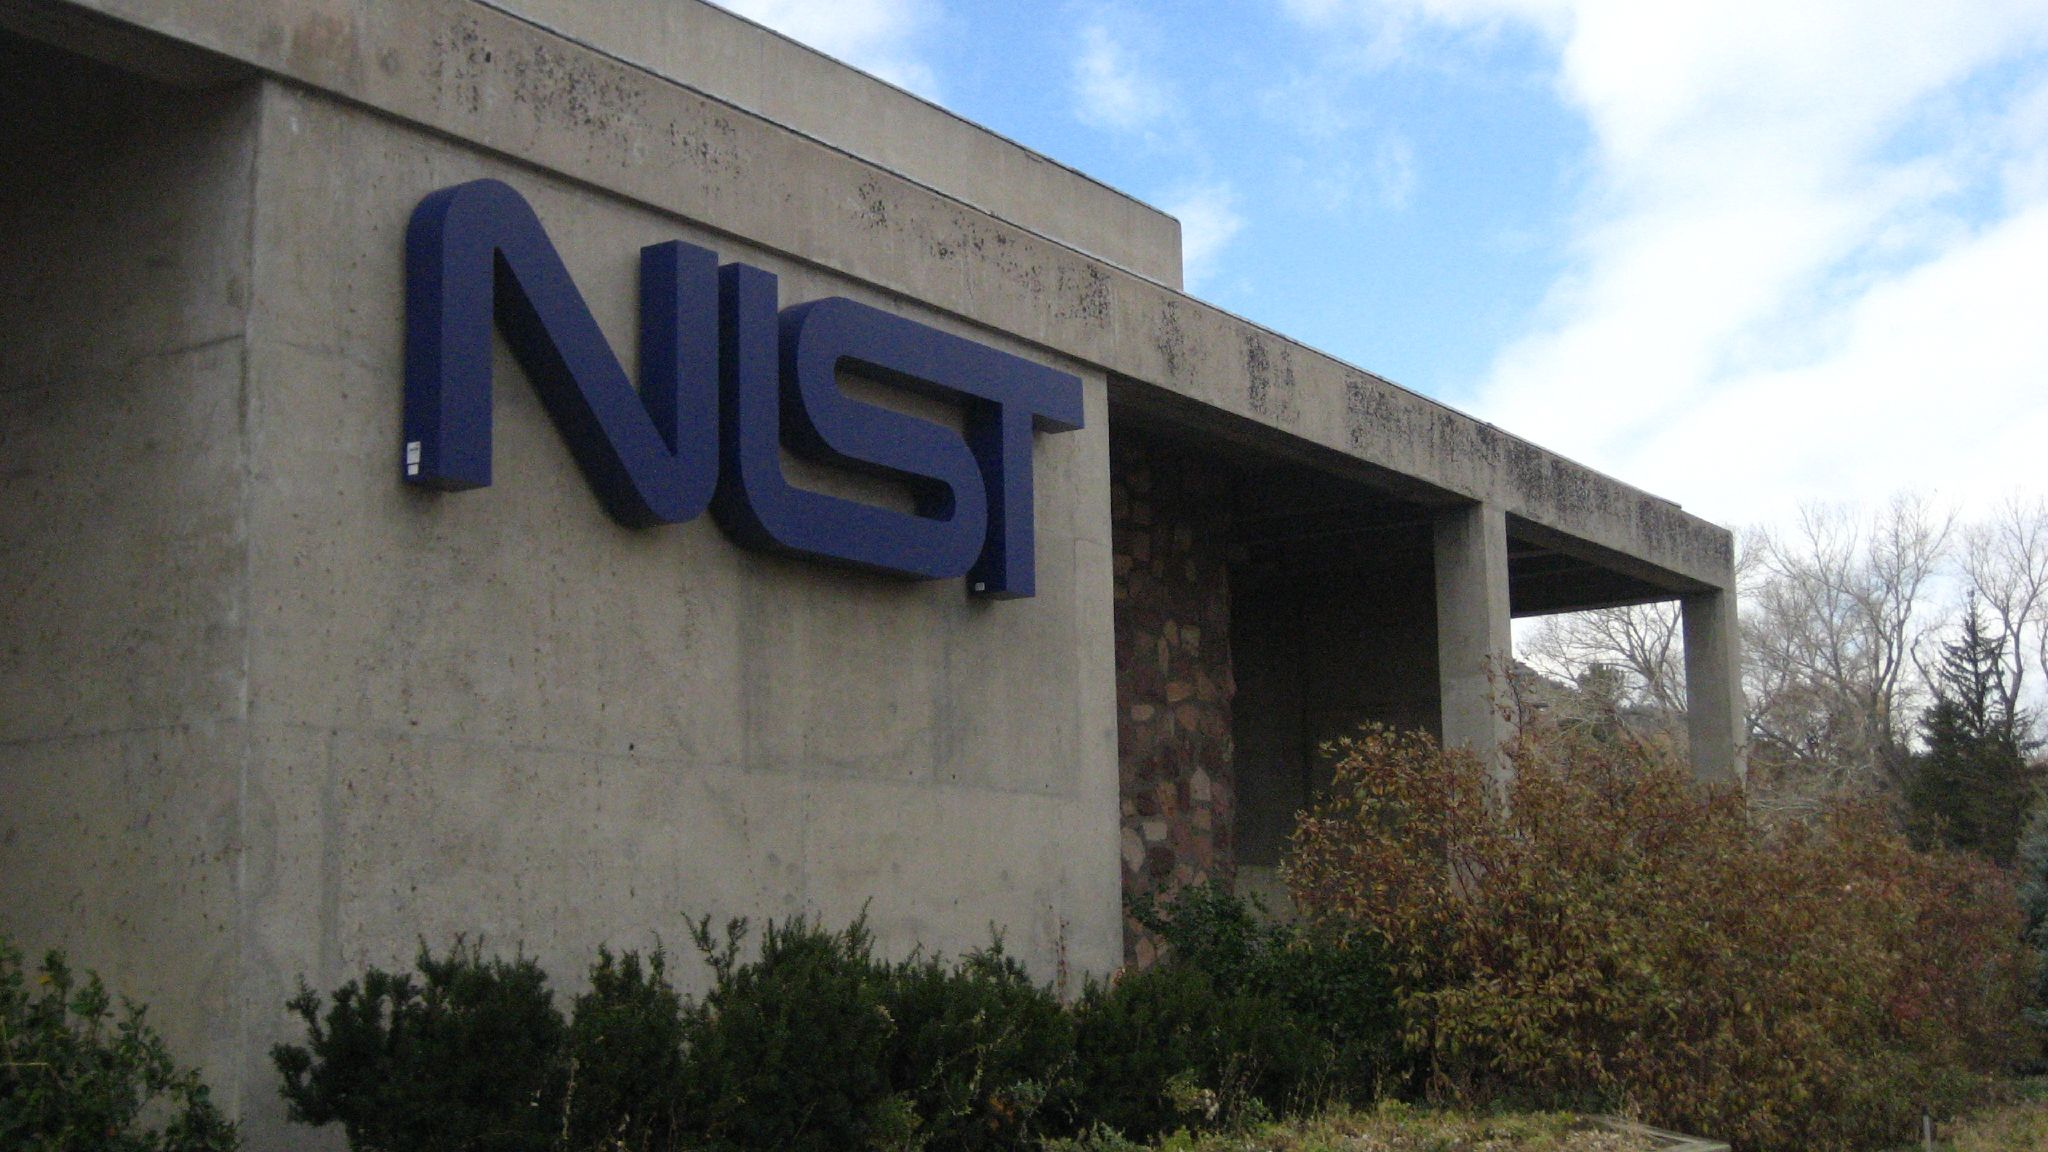 NIST has announced the beginning of the third phase of post quantum cryptography standardization